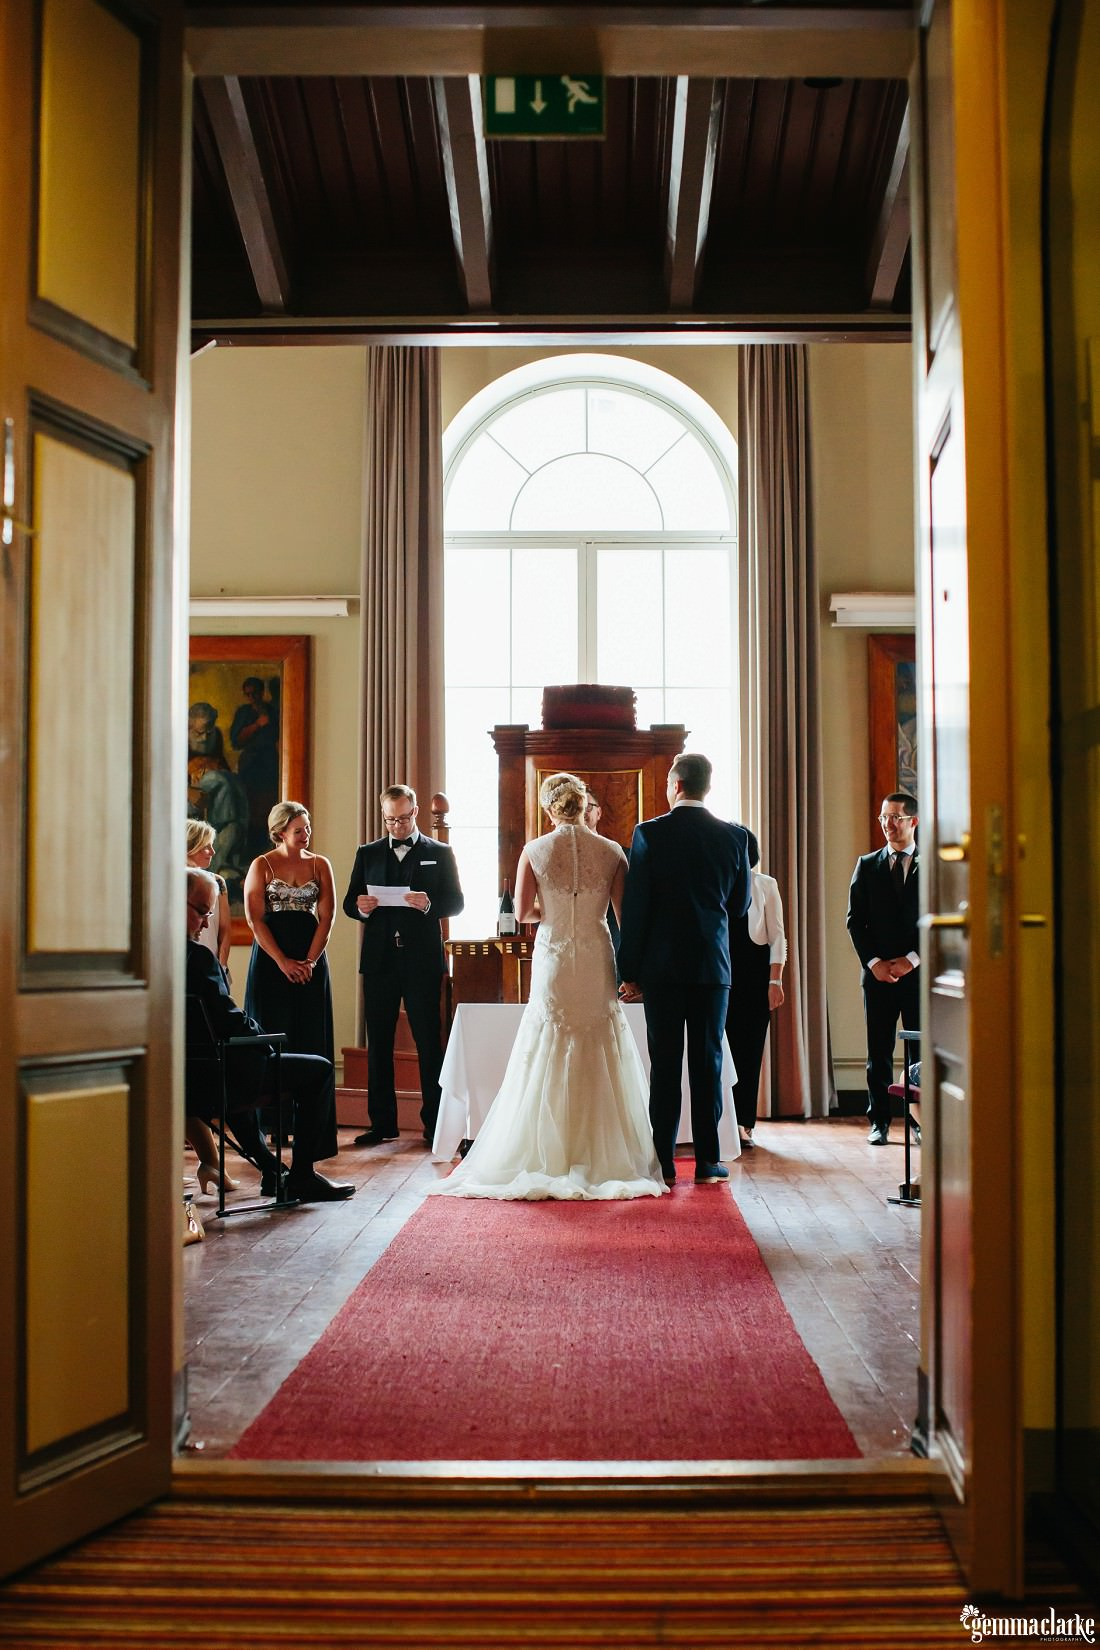 A wedding ceremony in progress as viewed through the entrance to the room